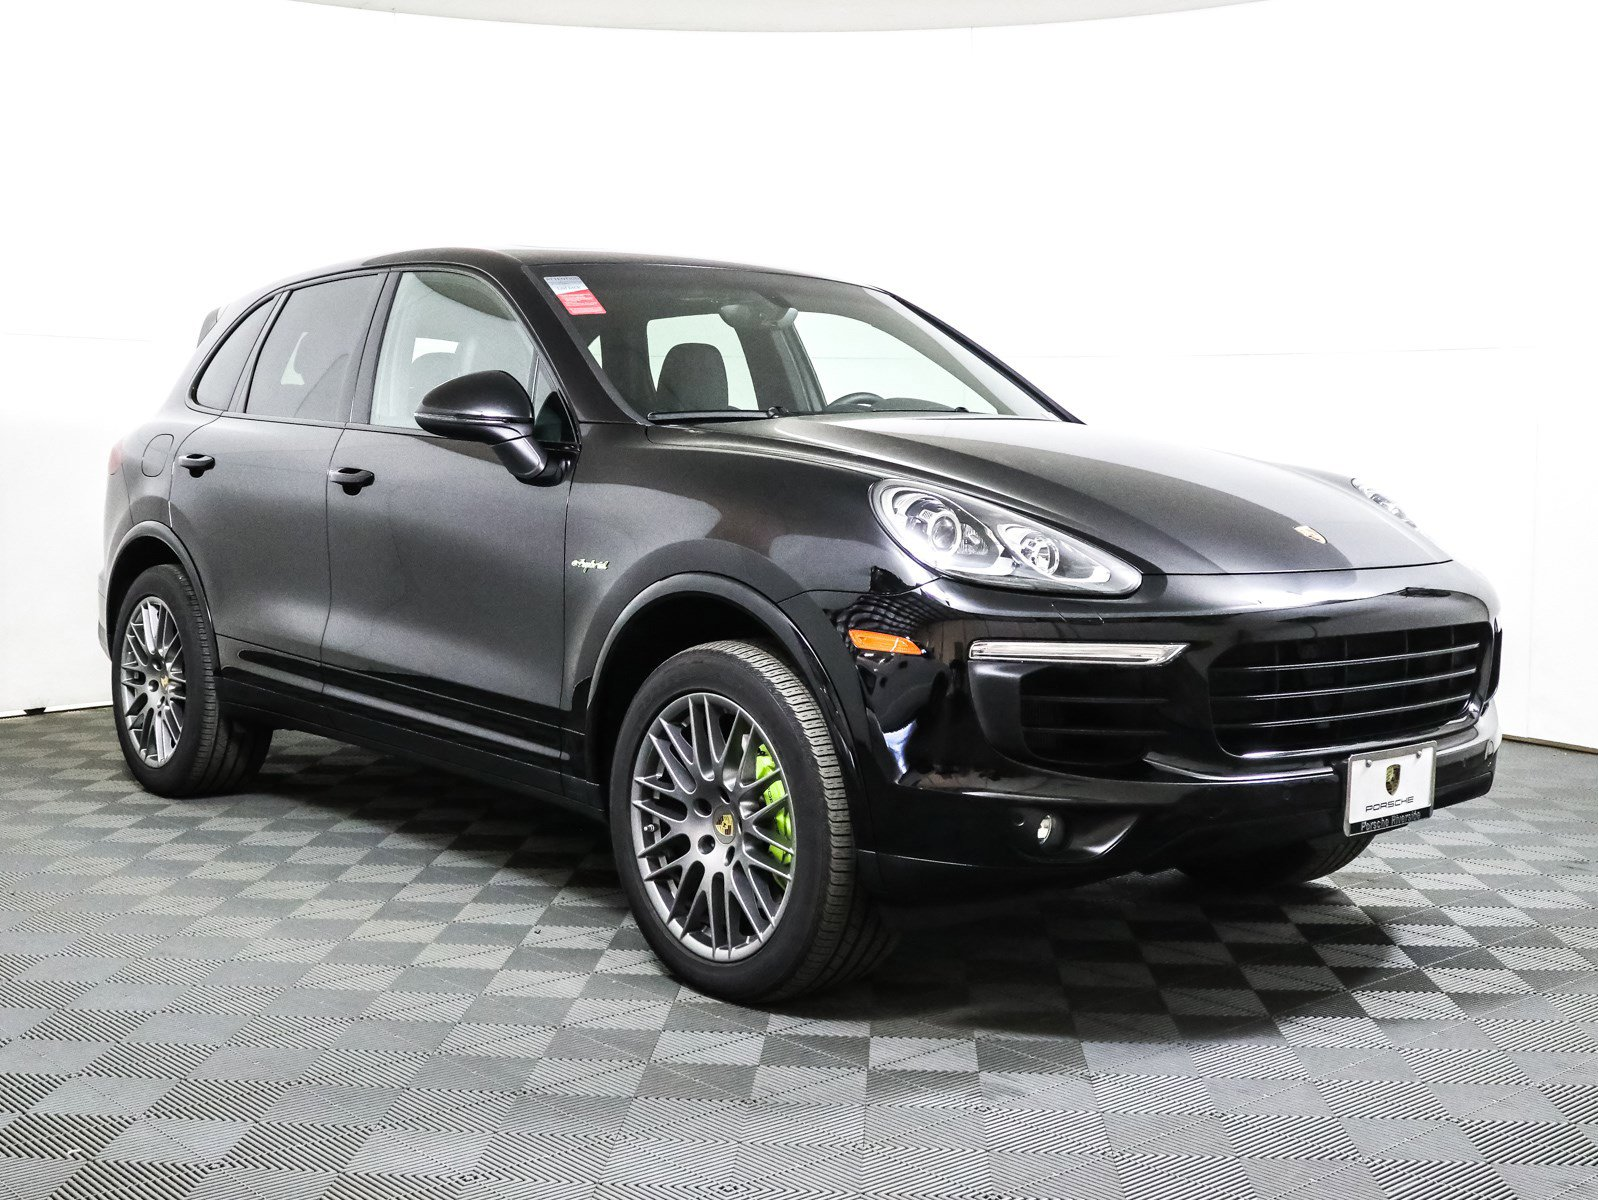 Certified Pre-Owned 2018 Porsche Cayenne S E-Hybrid Platinum Edition